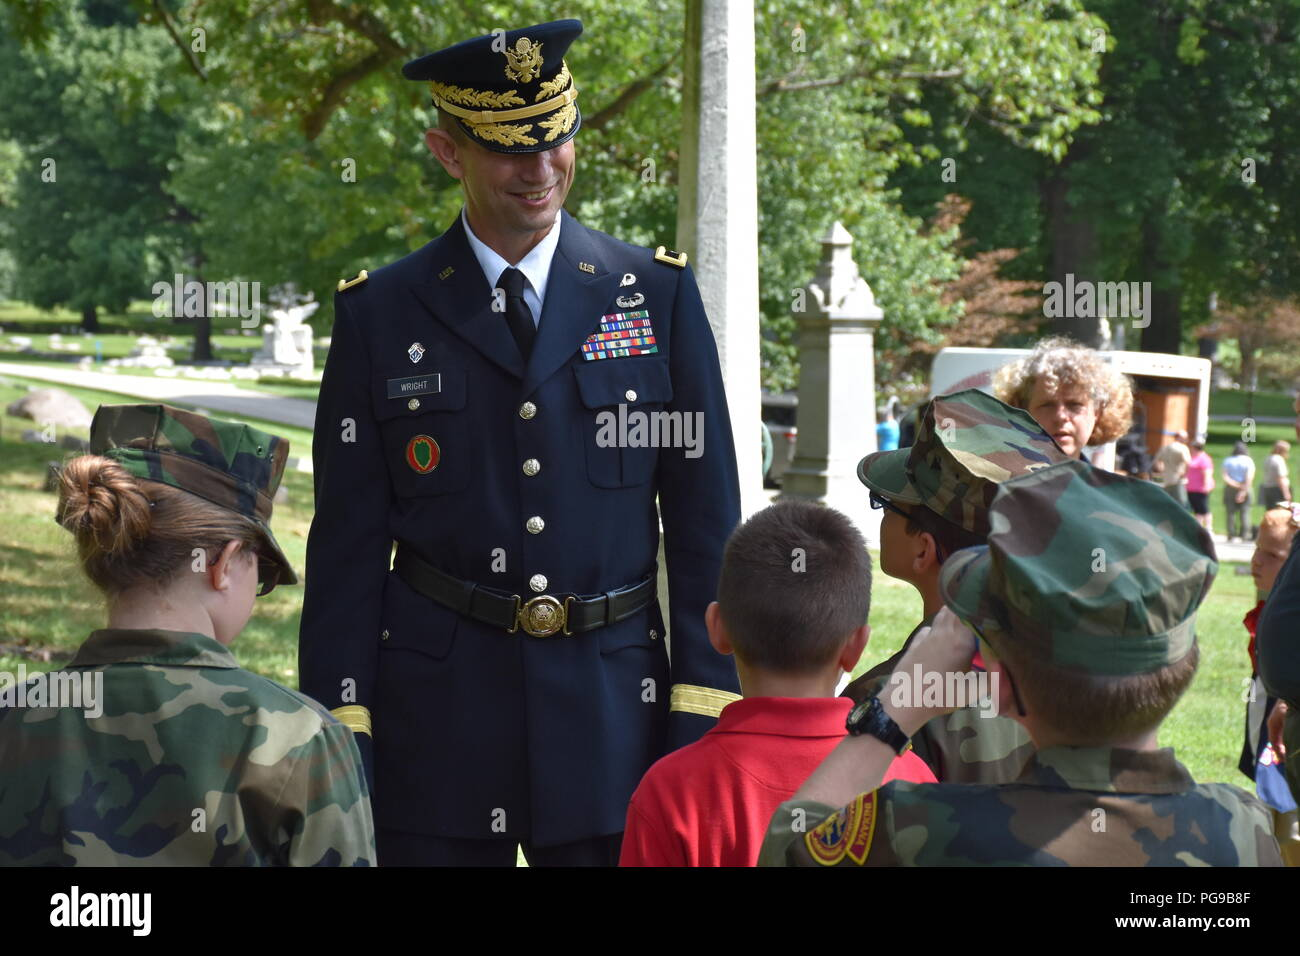 Brigadier Gen. Tony L. Wright, 88th Readiness Division deputy commanding general, answers questions from members of the Central Indiana Young Marines following a wreath laying ceremony for President Benjamin Harrison at Crown Hill Cemetery, in Indianapolis, on Aug. 18, to commemorate the Hoosier President's 185th birthday. (US Army photo by Catherine Carroll) Stock Photo